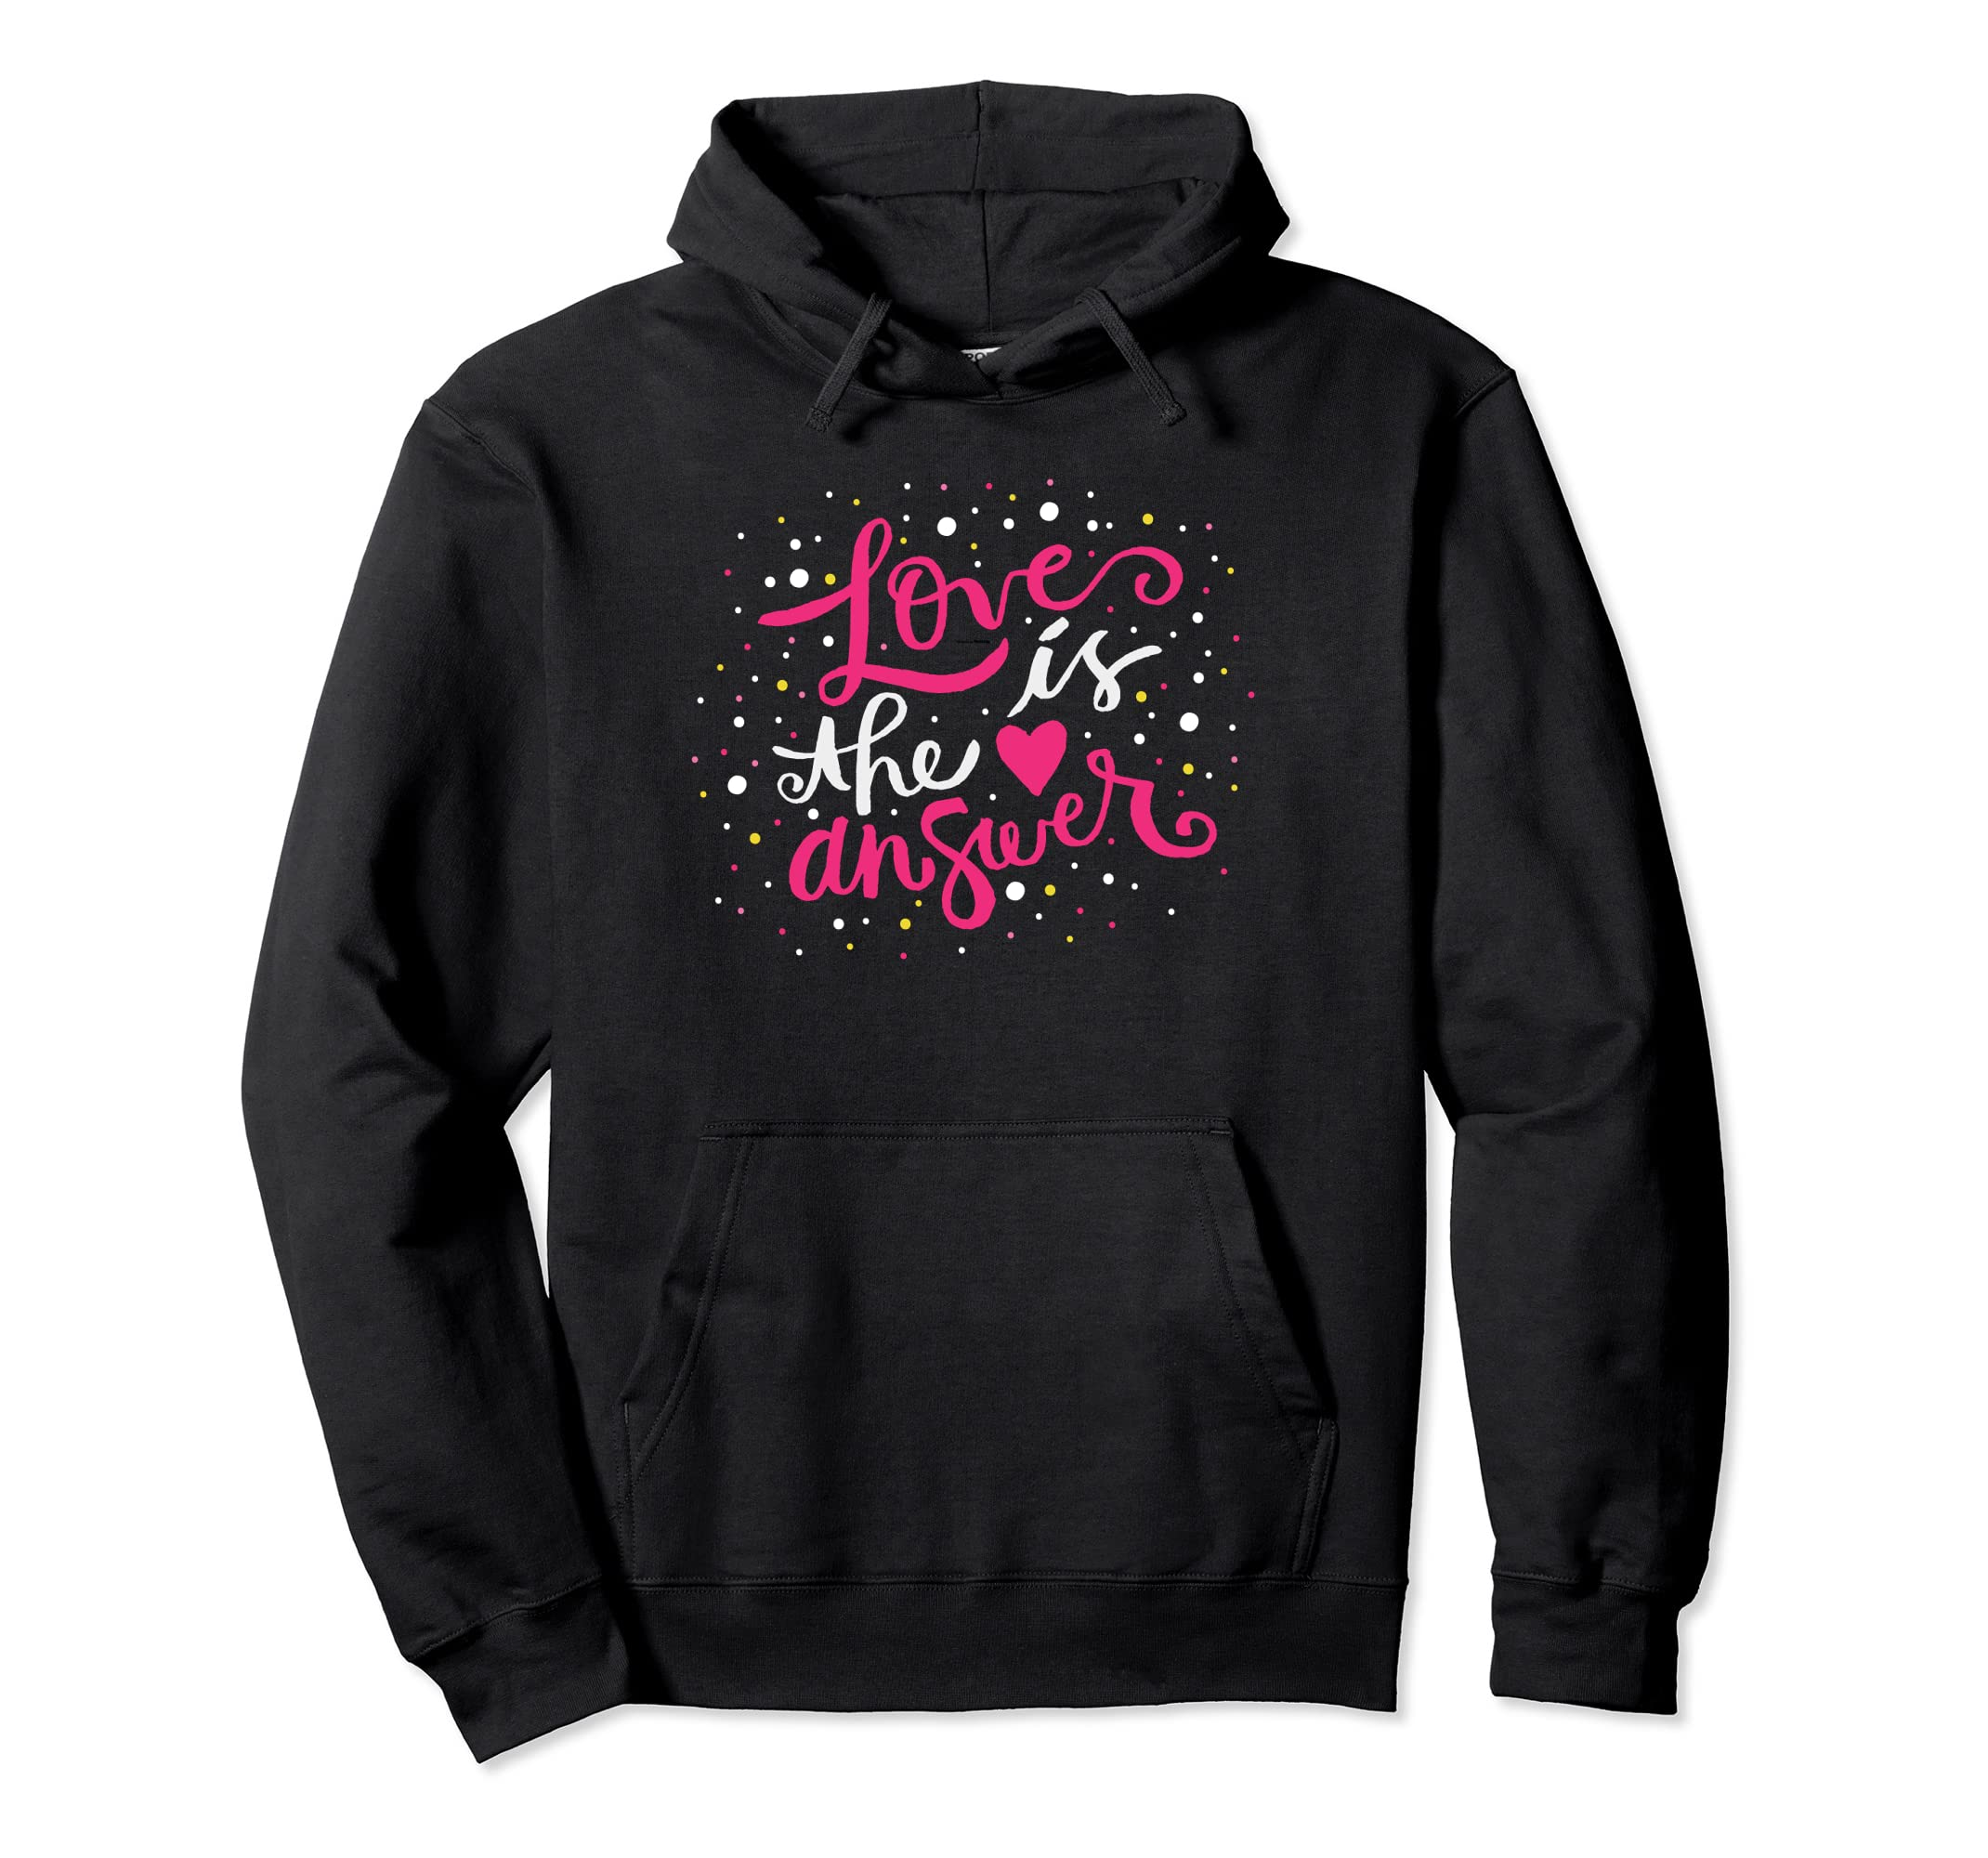 Hoodies With Quotes About Love  Hooded Love Sweatshirt